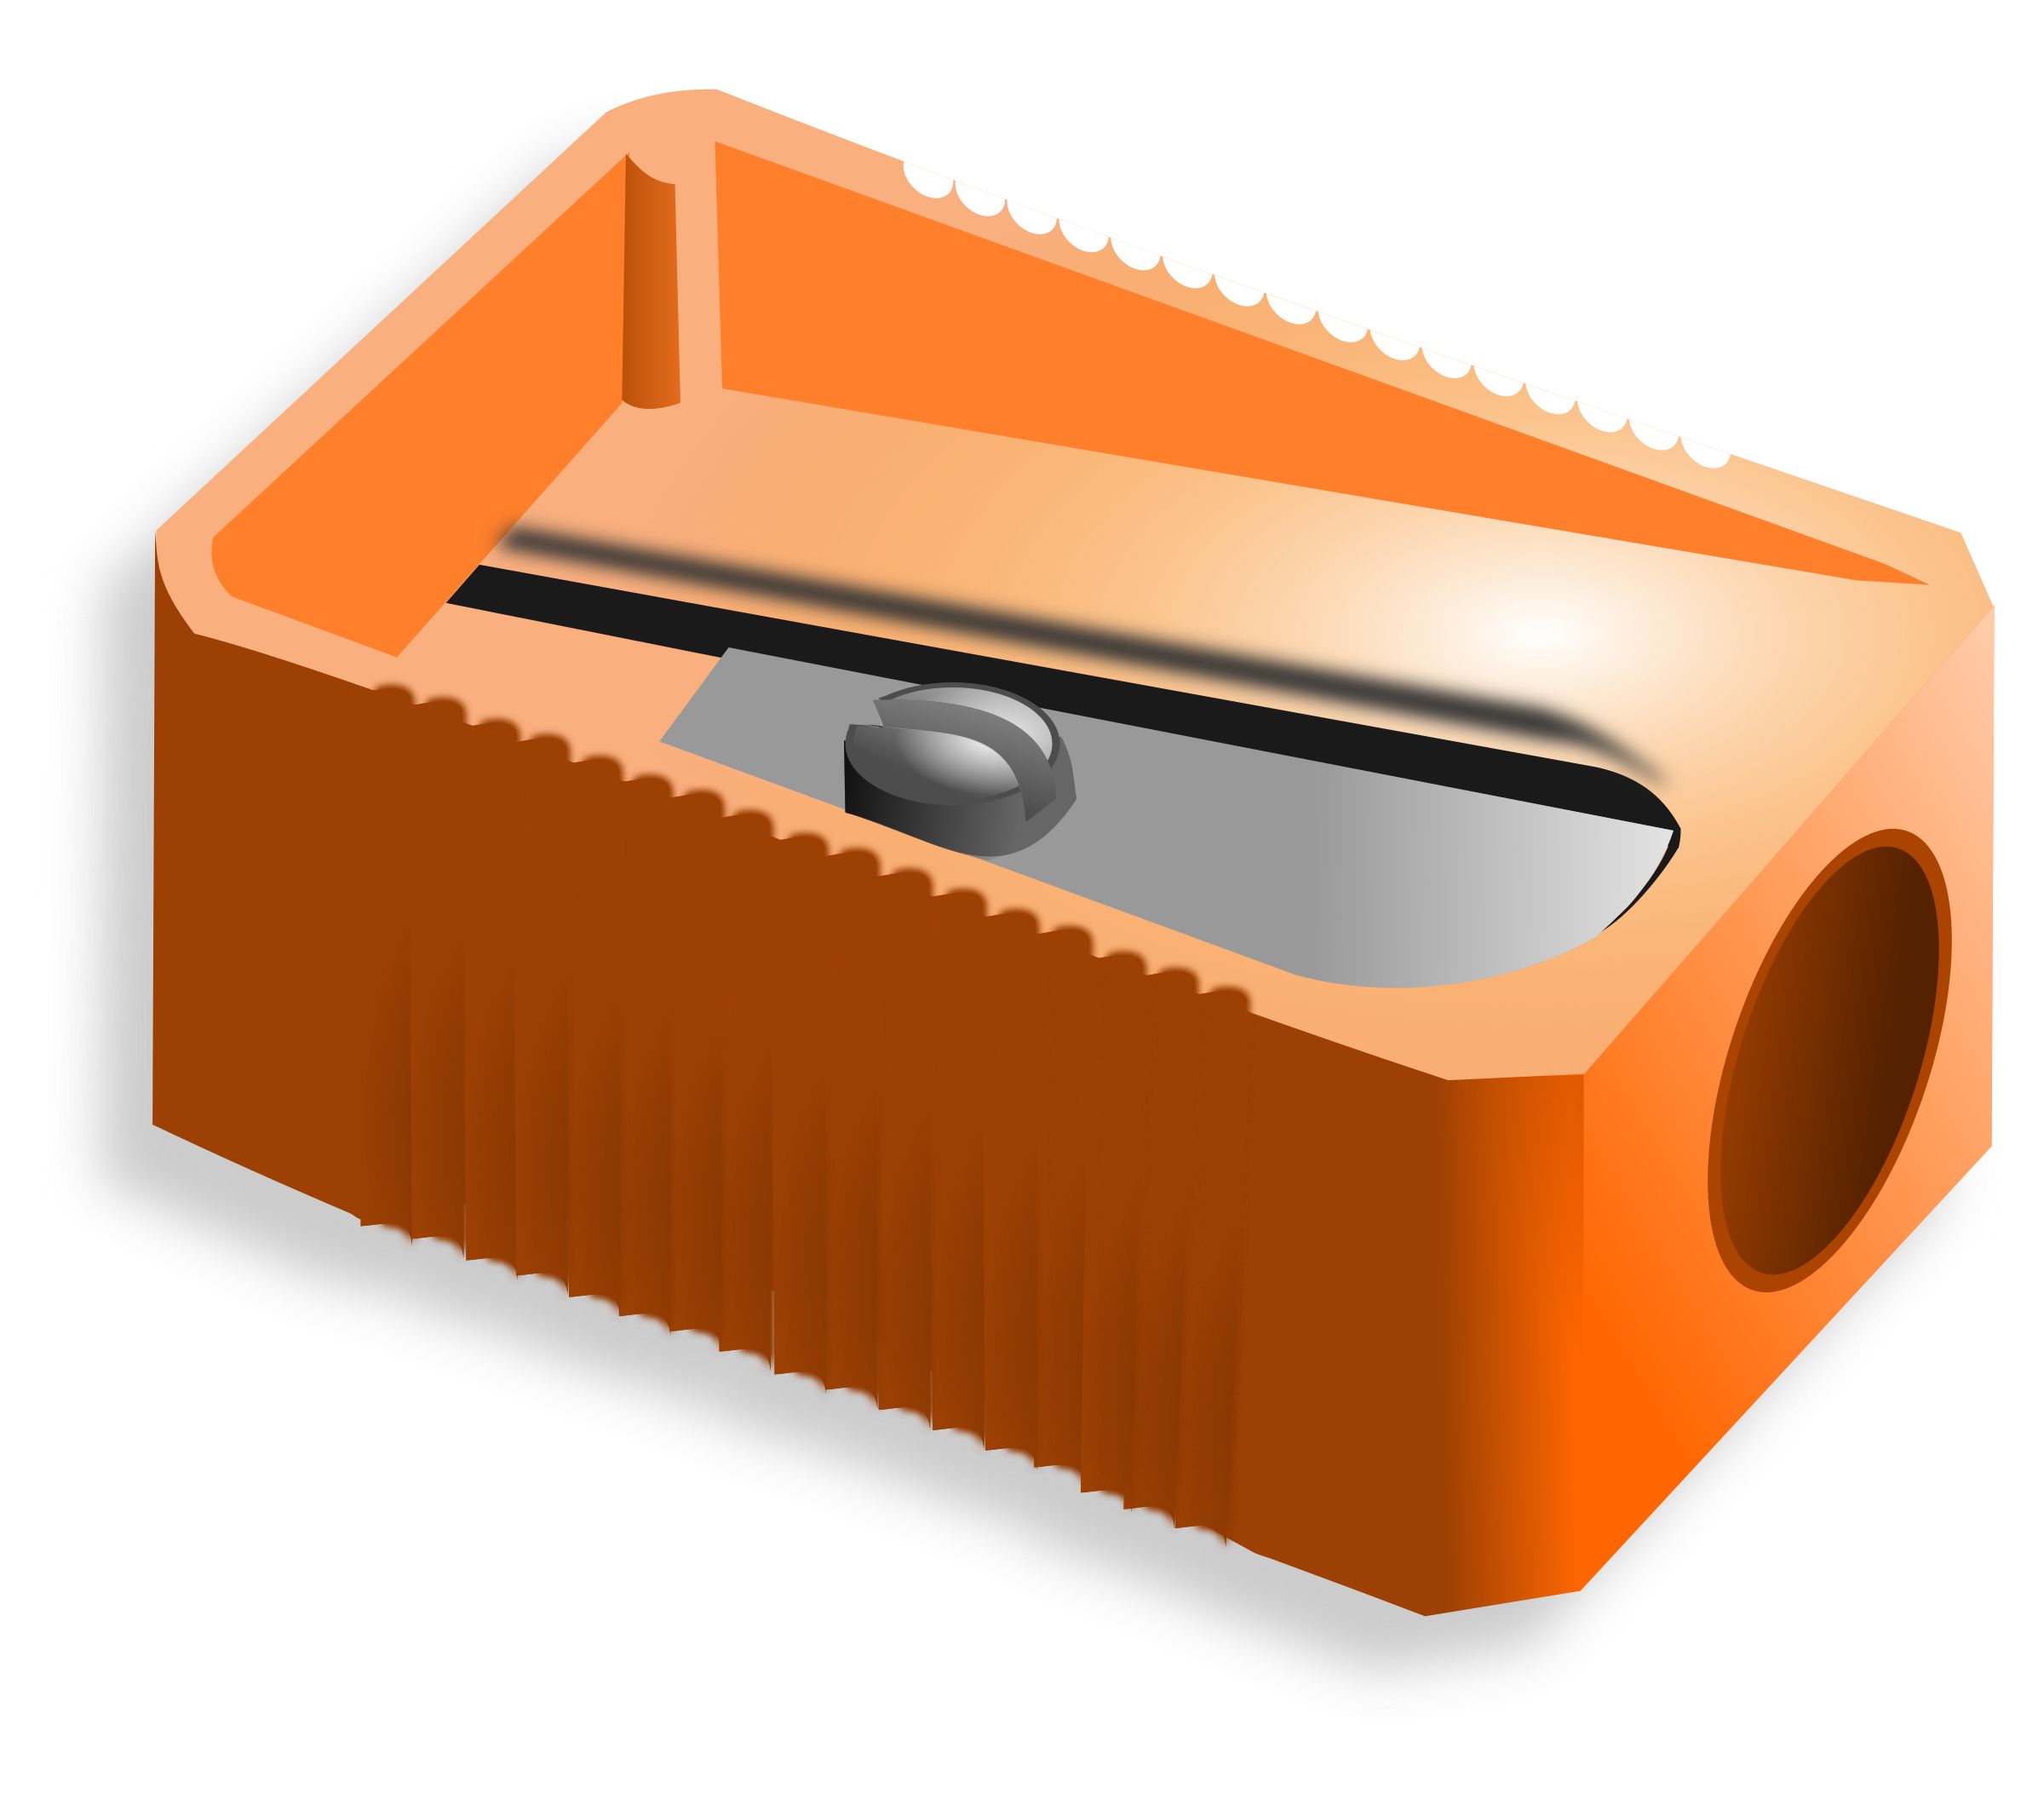 Sharpener clipart pencil. Big image png